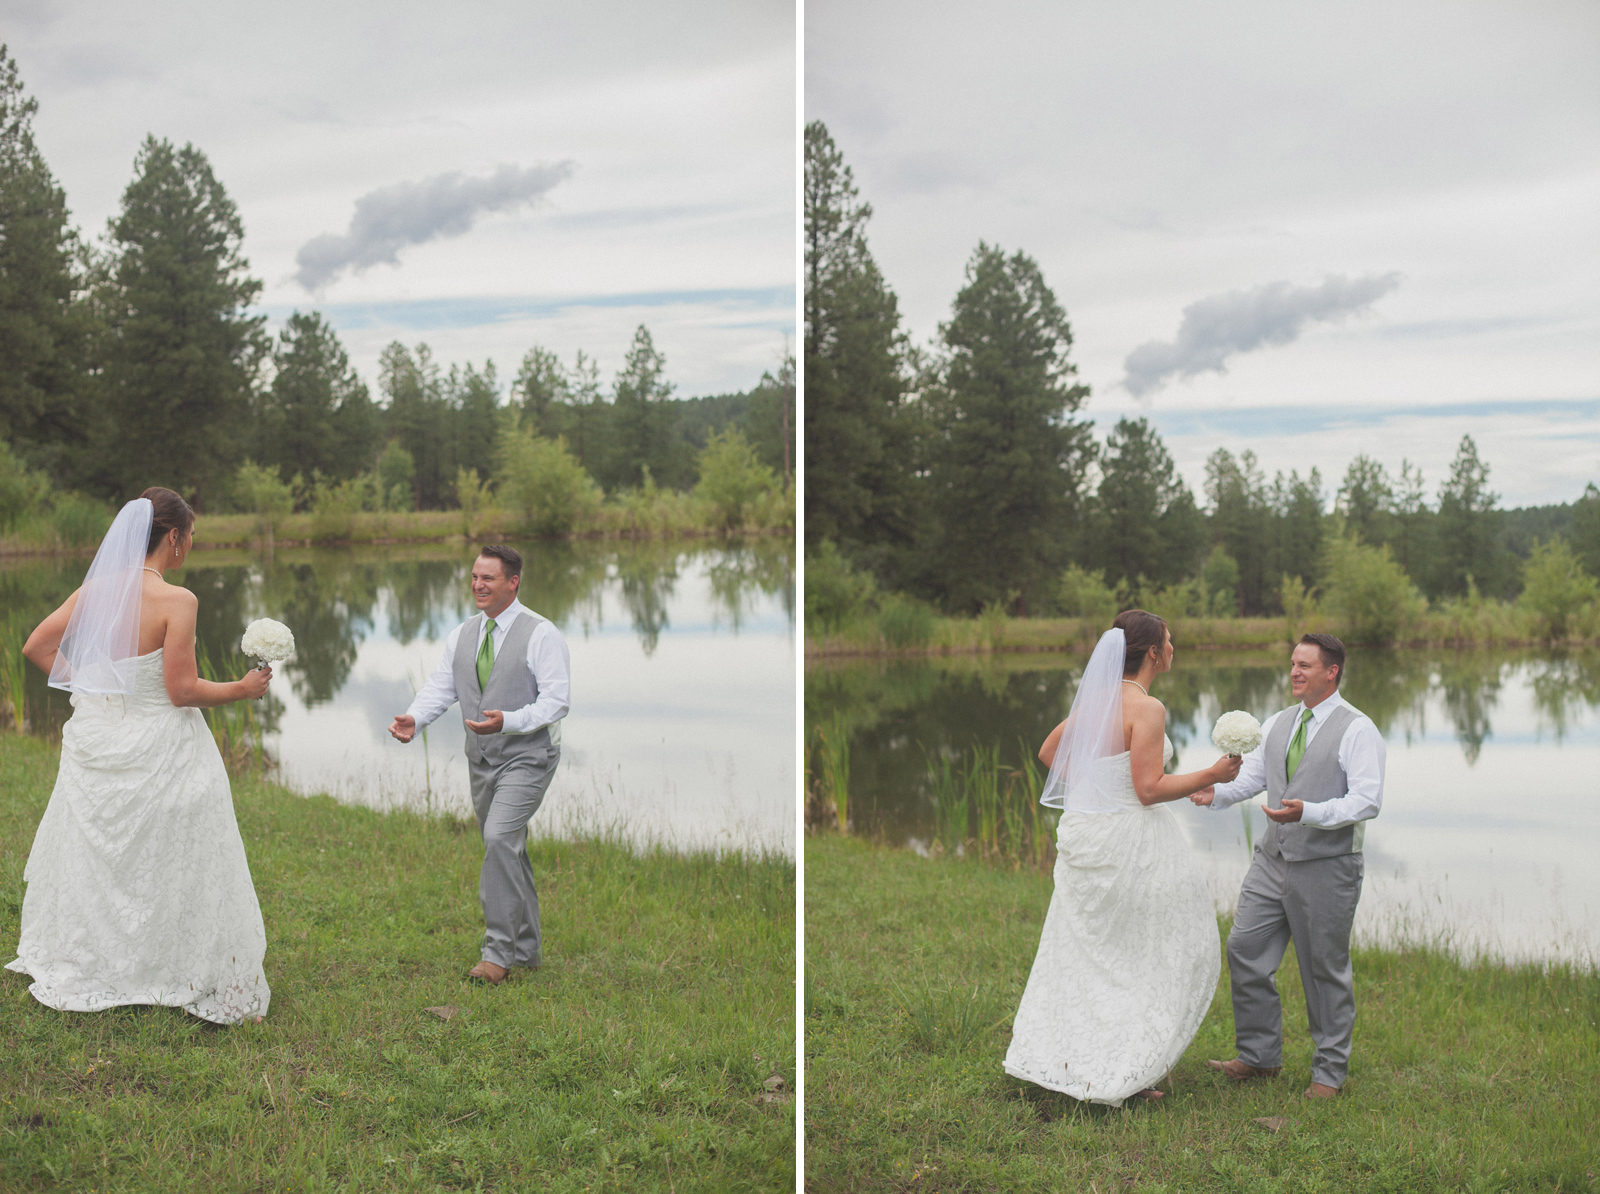 066-groom-bride-wedding-cabin-woods-forest-pictures-photos-dress-photography-portraits-first-look-firstlook-reveal-happy-farmington-aztec-durango-mancos-co-nm